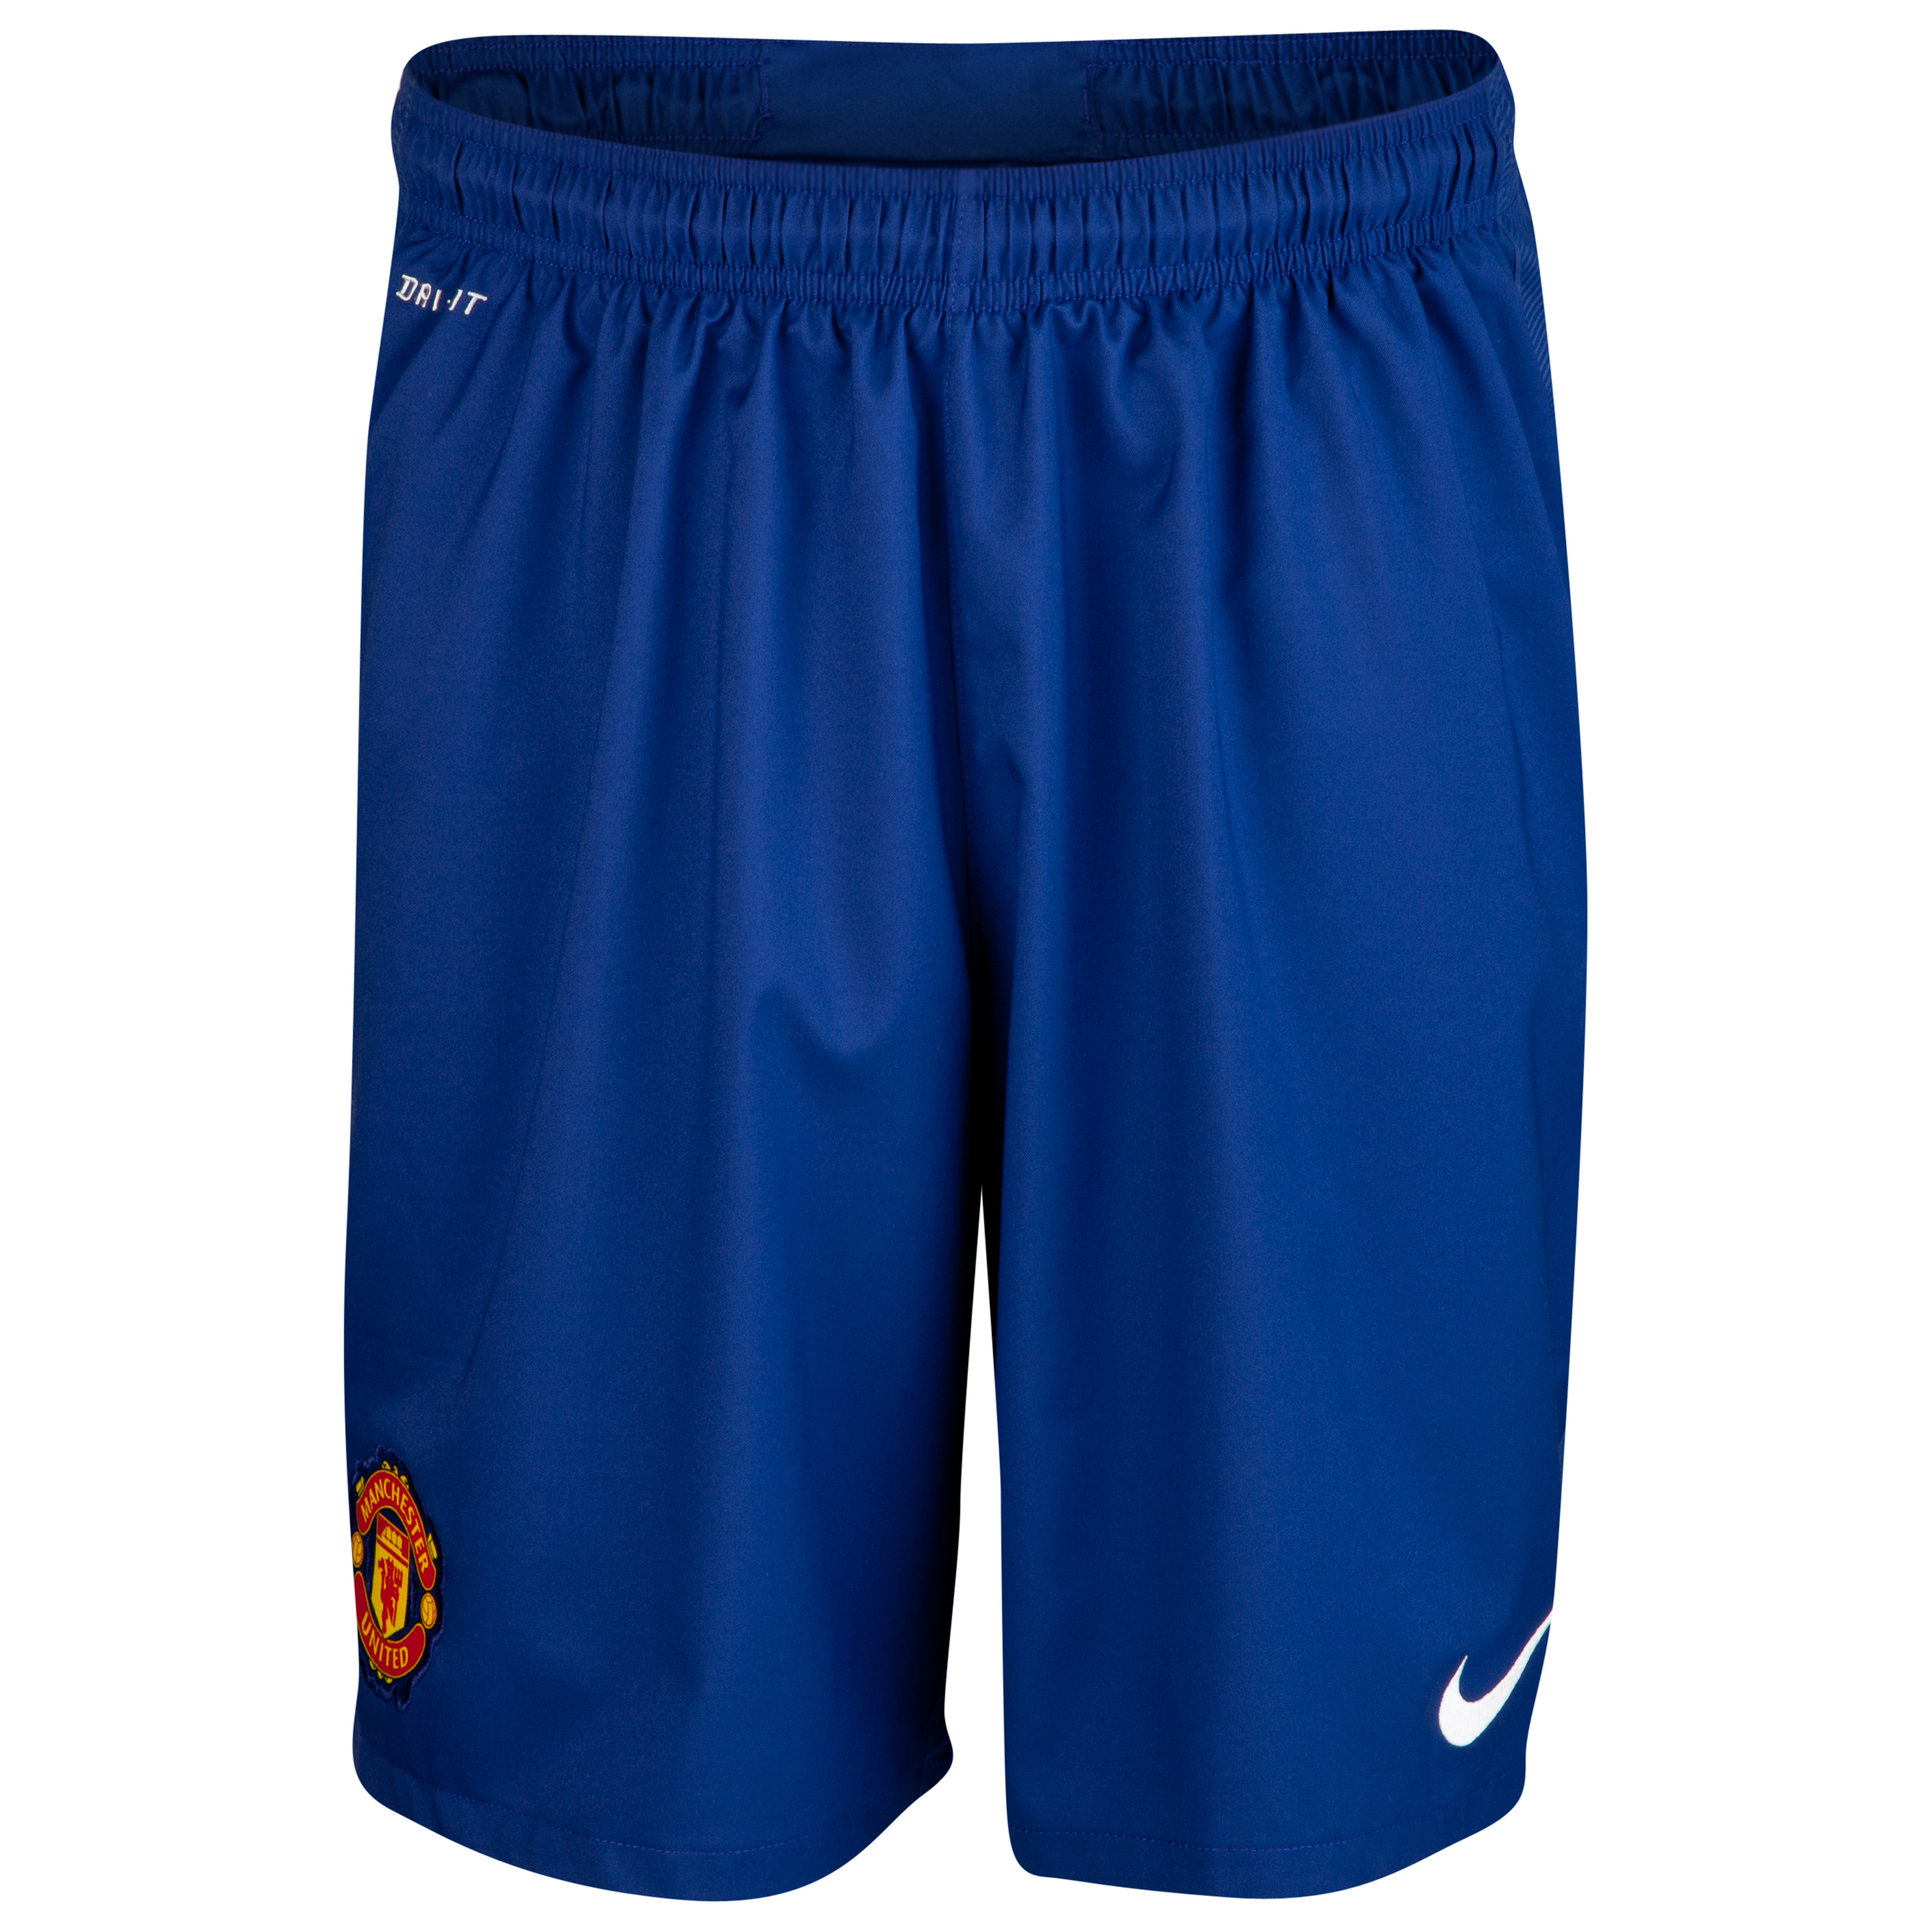 Manchester United Away Goalkeeper Short 2012/13  - Youths